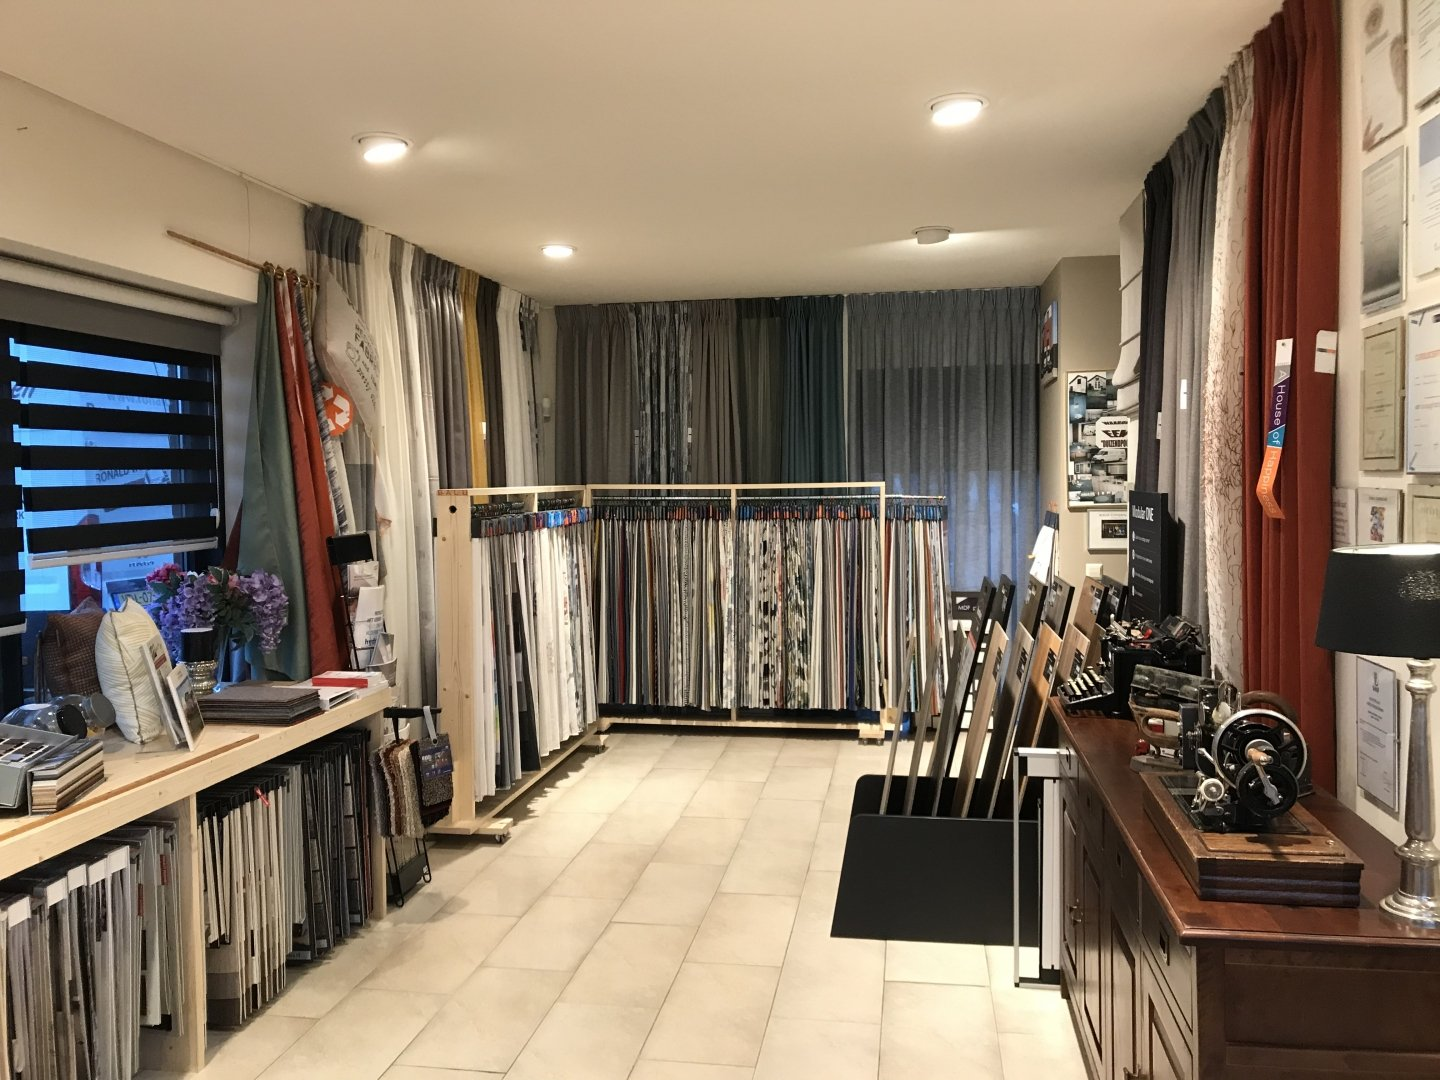 ronald-van-eijk-showroom-6